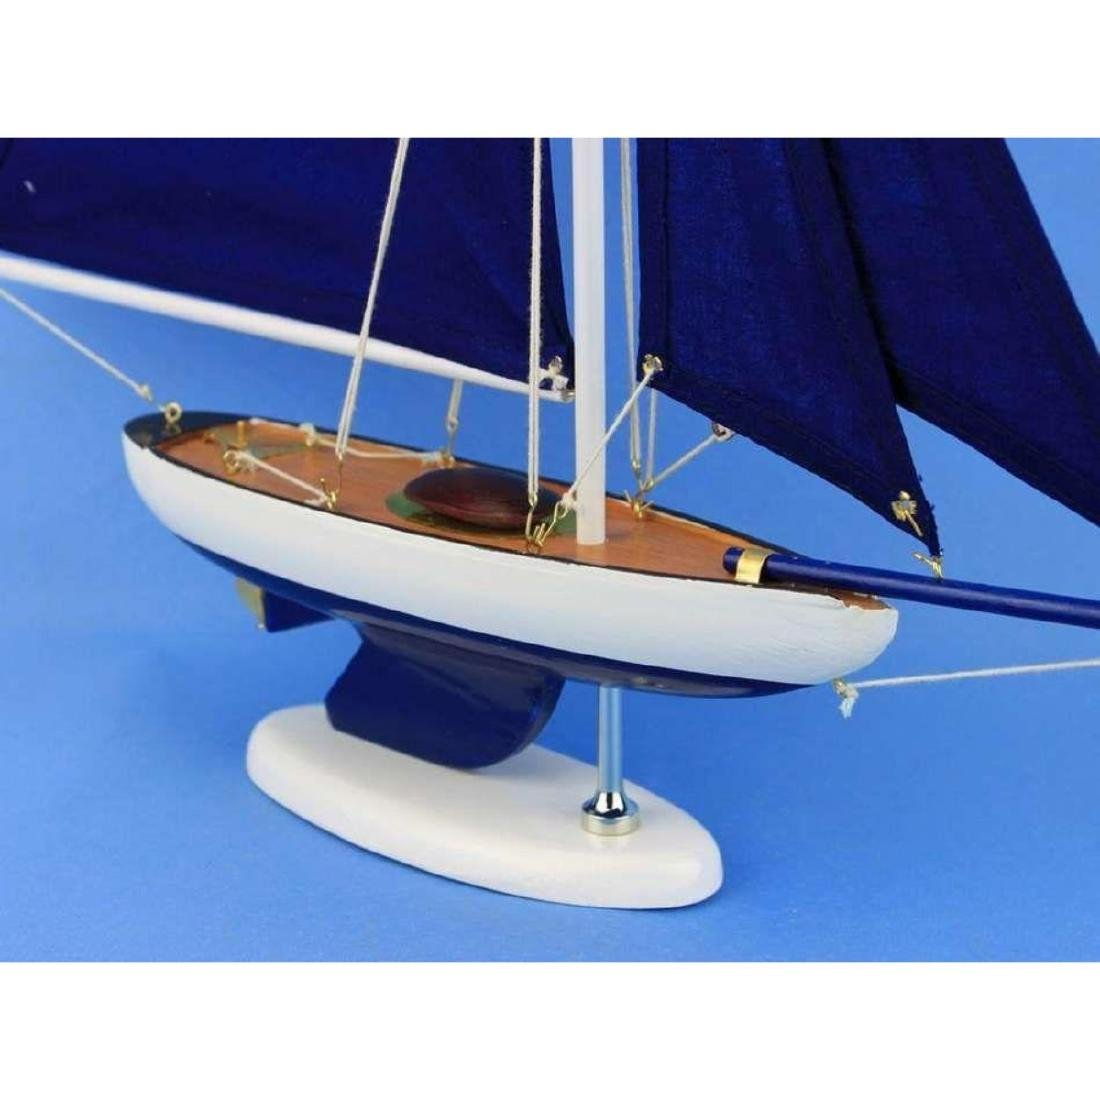 Wooden Bermuda Sloop Dark Blue Model Sailboat - 6